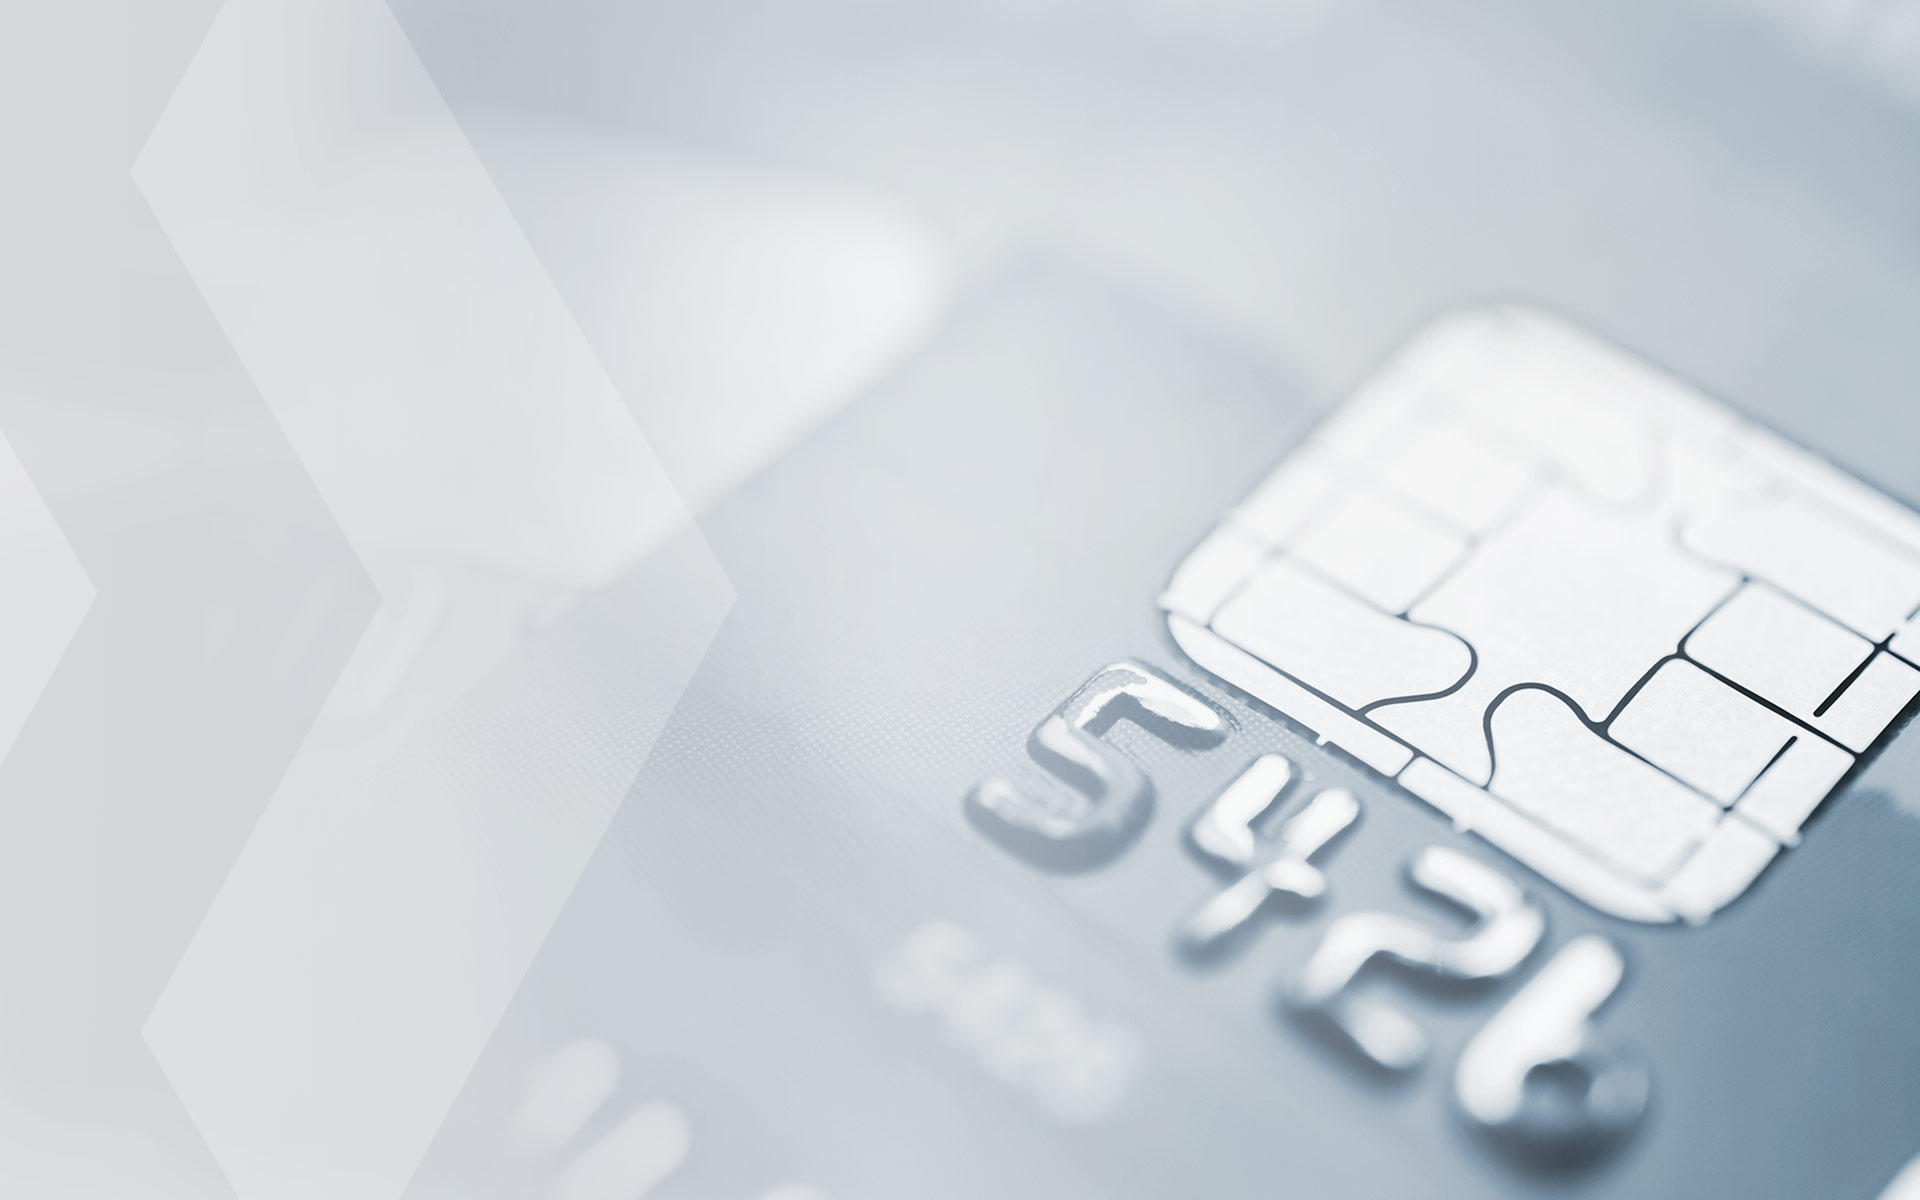 Payment card chip and number